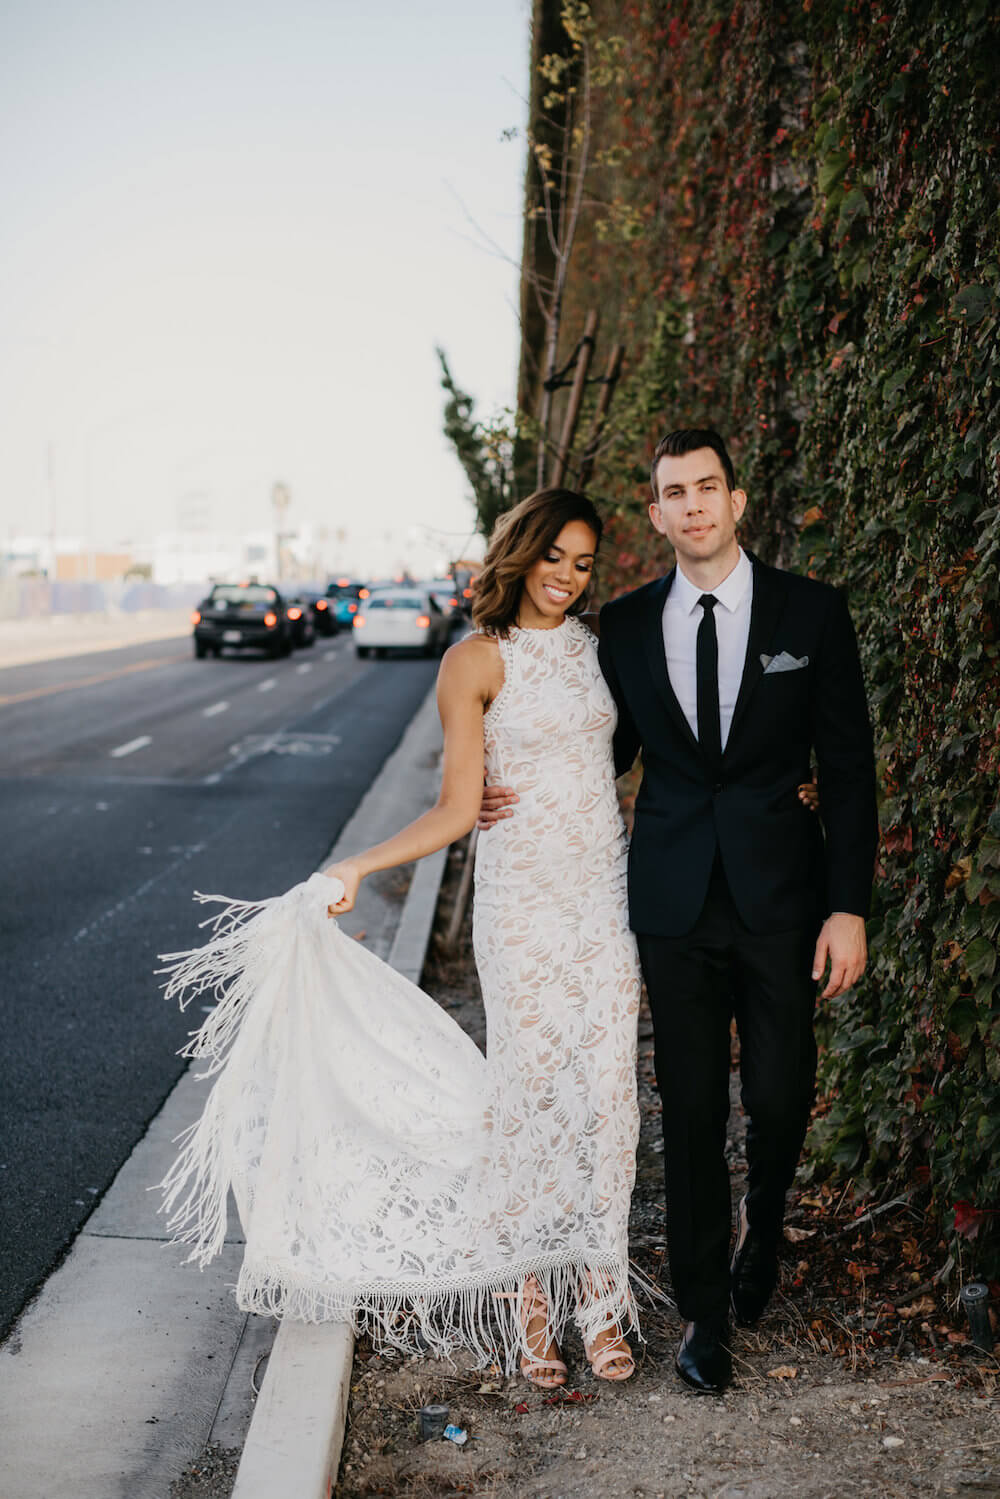 Kalia and Joe, Kalia wears a GRACE LOVES LACE wedding dress